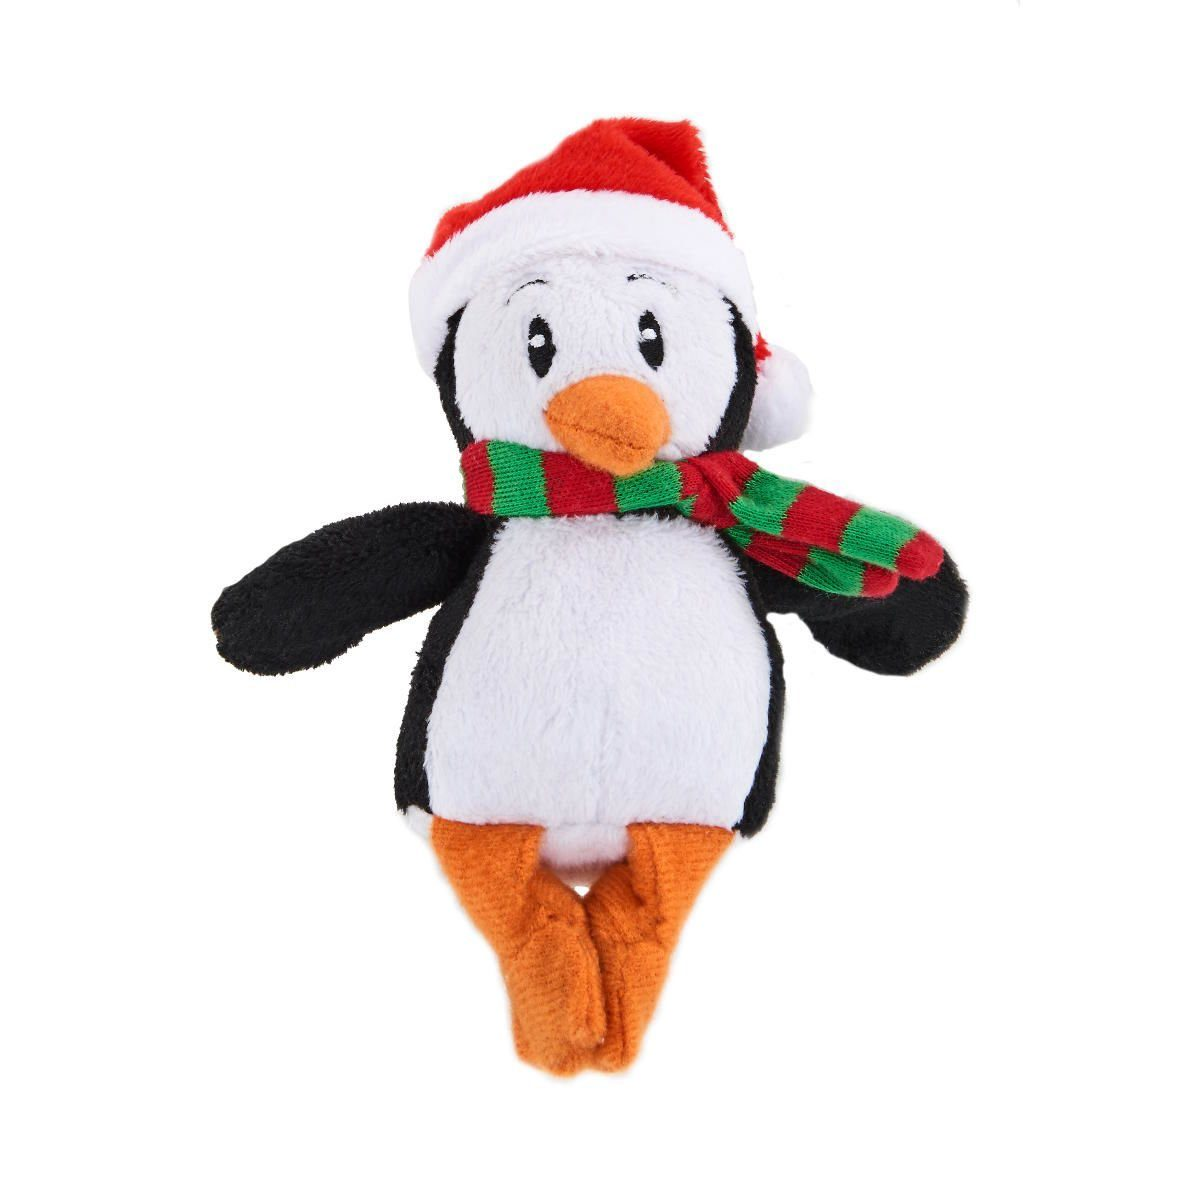 BUTLERS FREECLIMBER »Magnetfigur Pinguin«